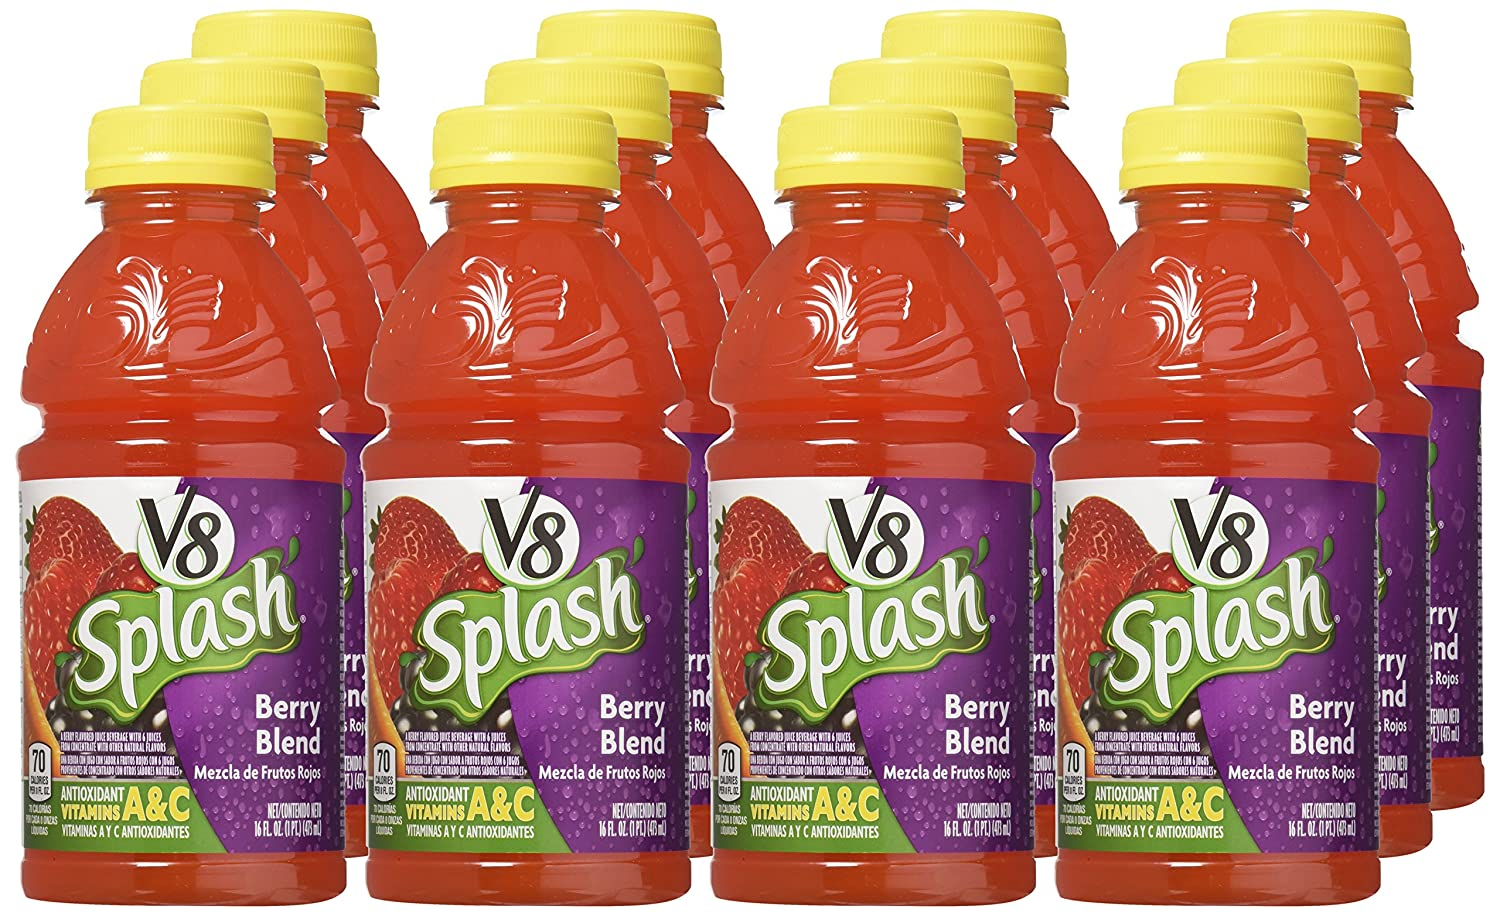 Amazon.com : V8 Splash Berry Blend, 16 oz. Bottle : Vegetable Juices : Grocery & Gourmet Food